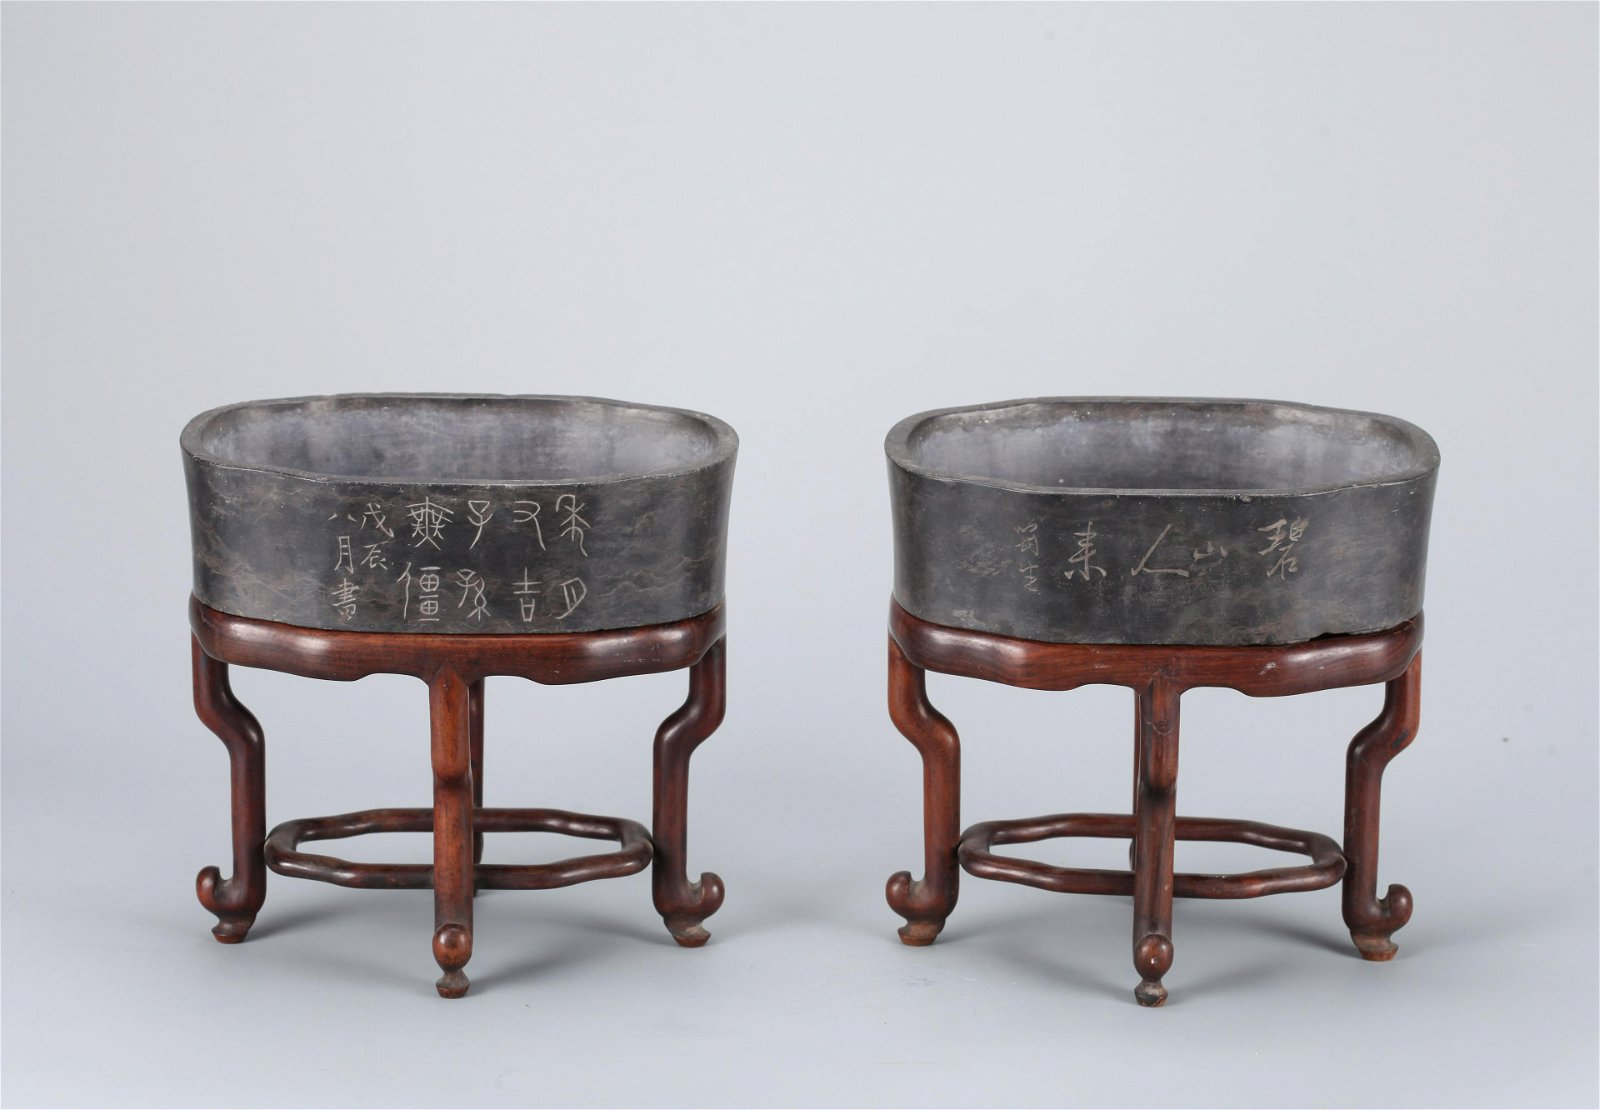 A PAIR OF CHINESE DUAN STONE JARDINIERE, QING DYNASTY